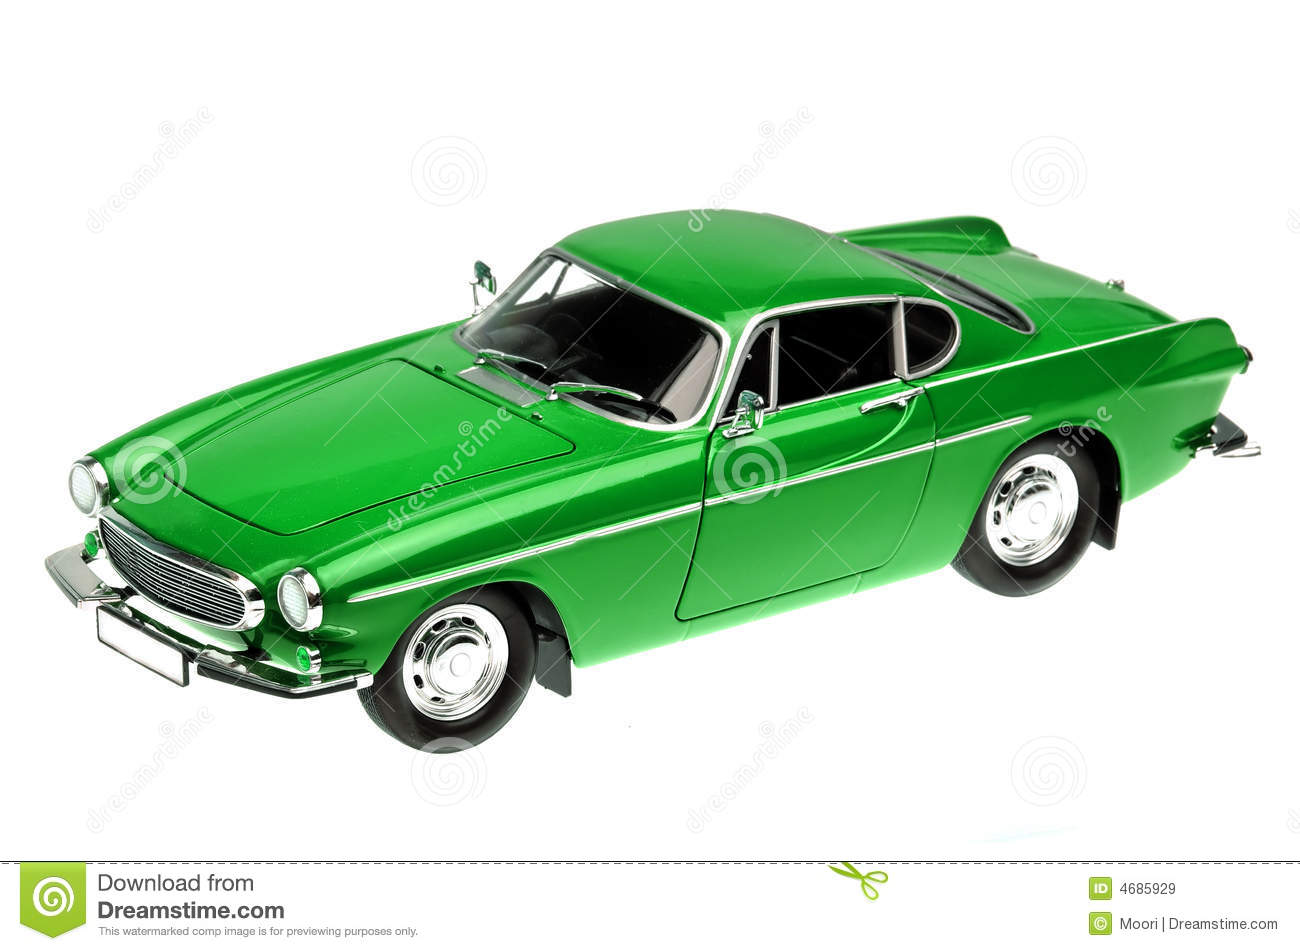 Collectible Toy Cars Prices